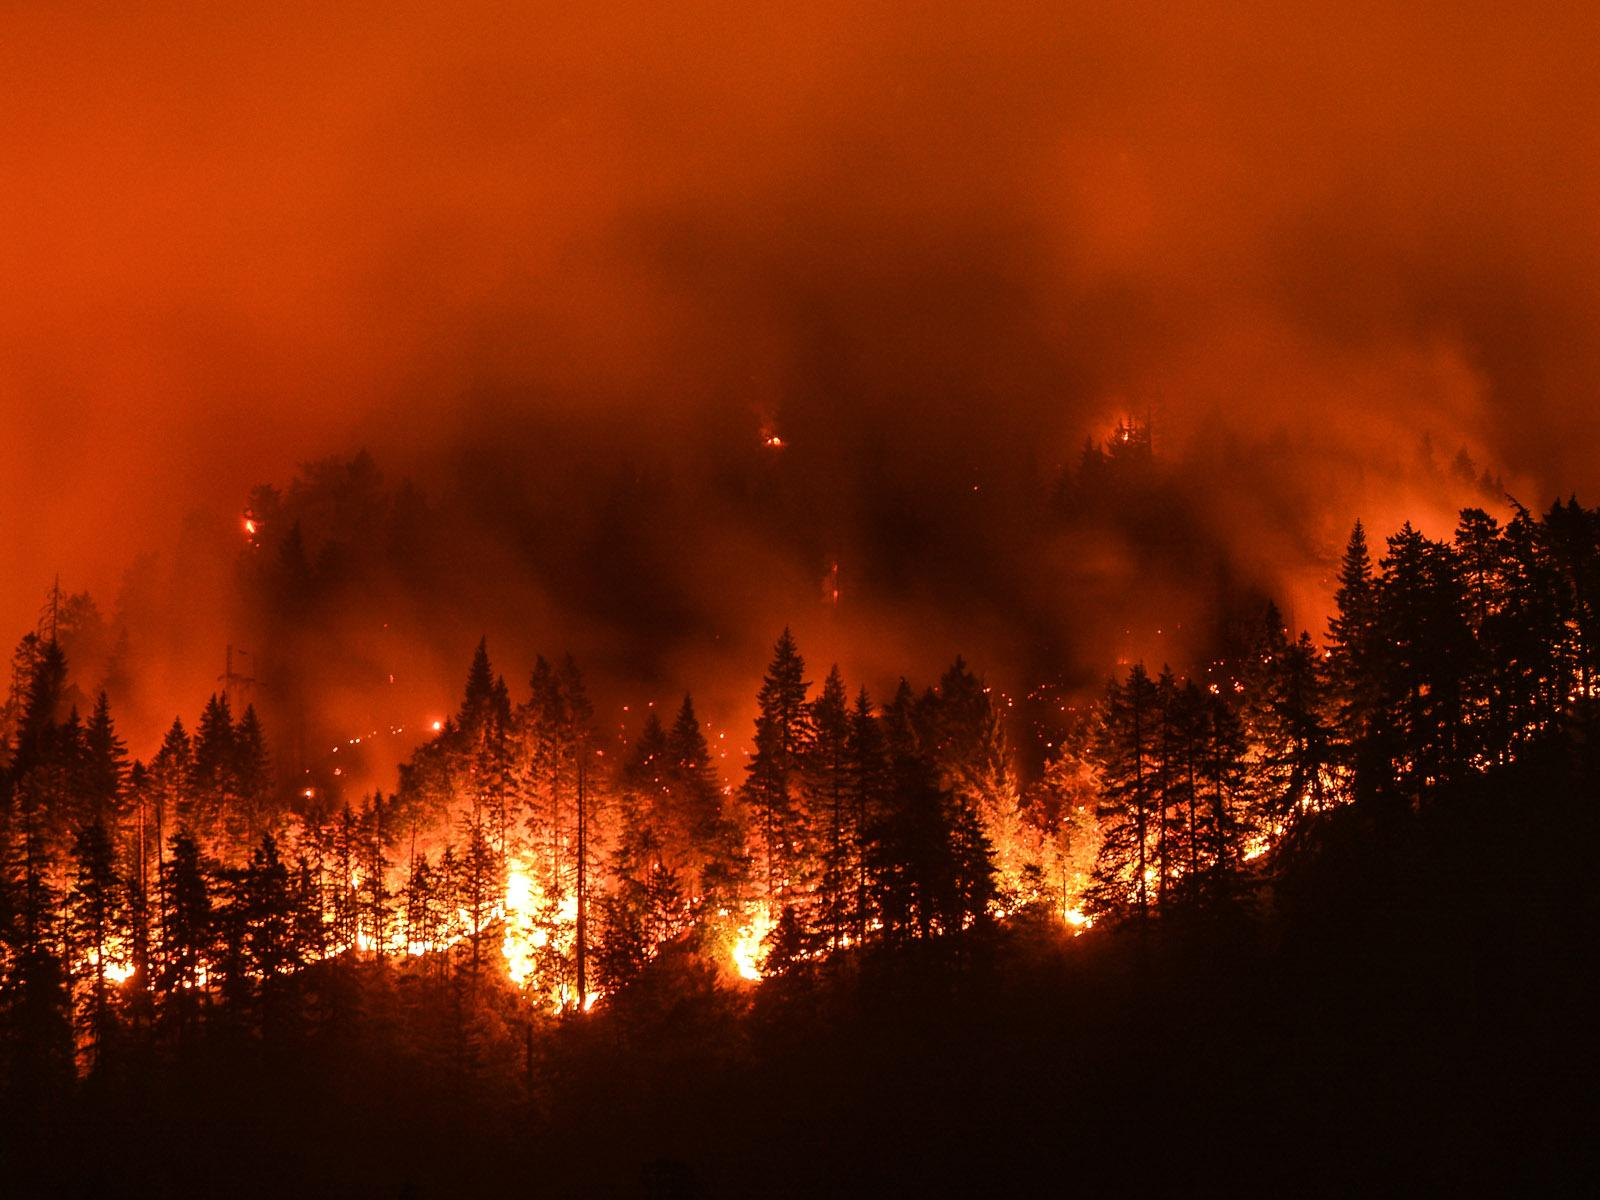 Wildfire rages near the Columbia River Gorge in the 2017 Eagle Creek Fire. Hydro-meteorological conditions like humidity, as well as human-caused factors, are essential in predicting and preparing for wildfire, according to PNNL scientists.